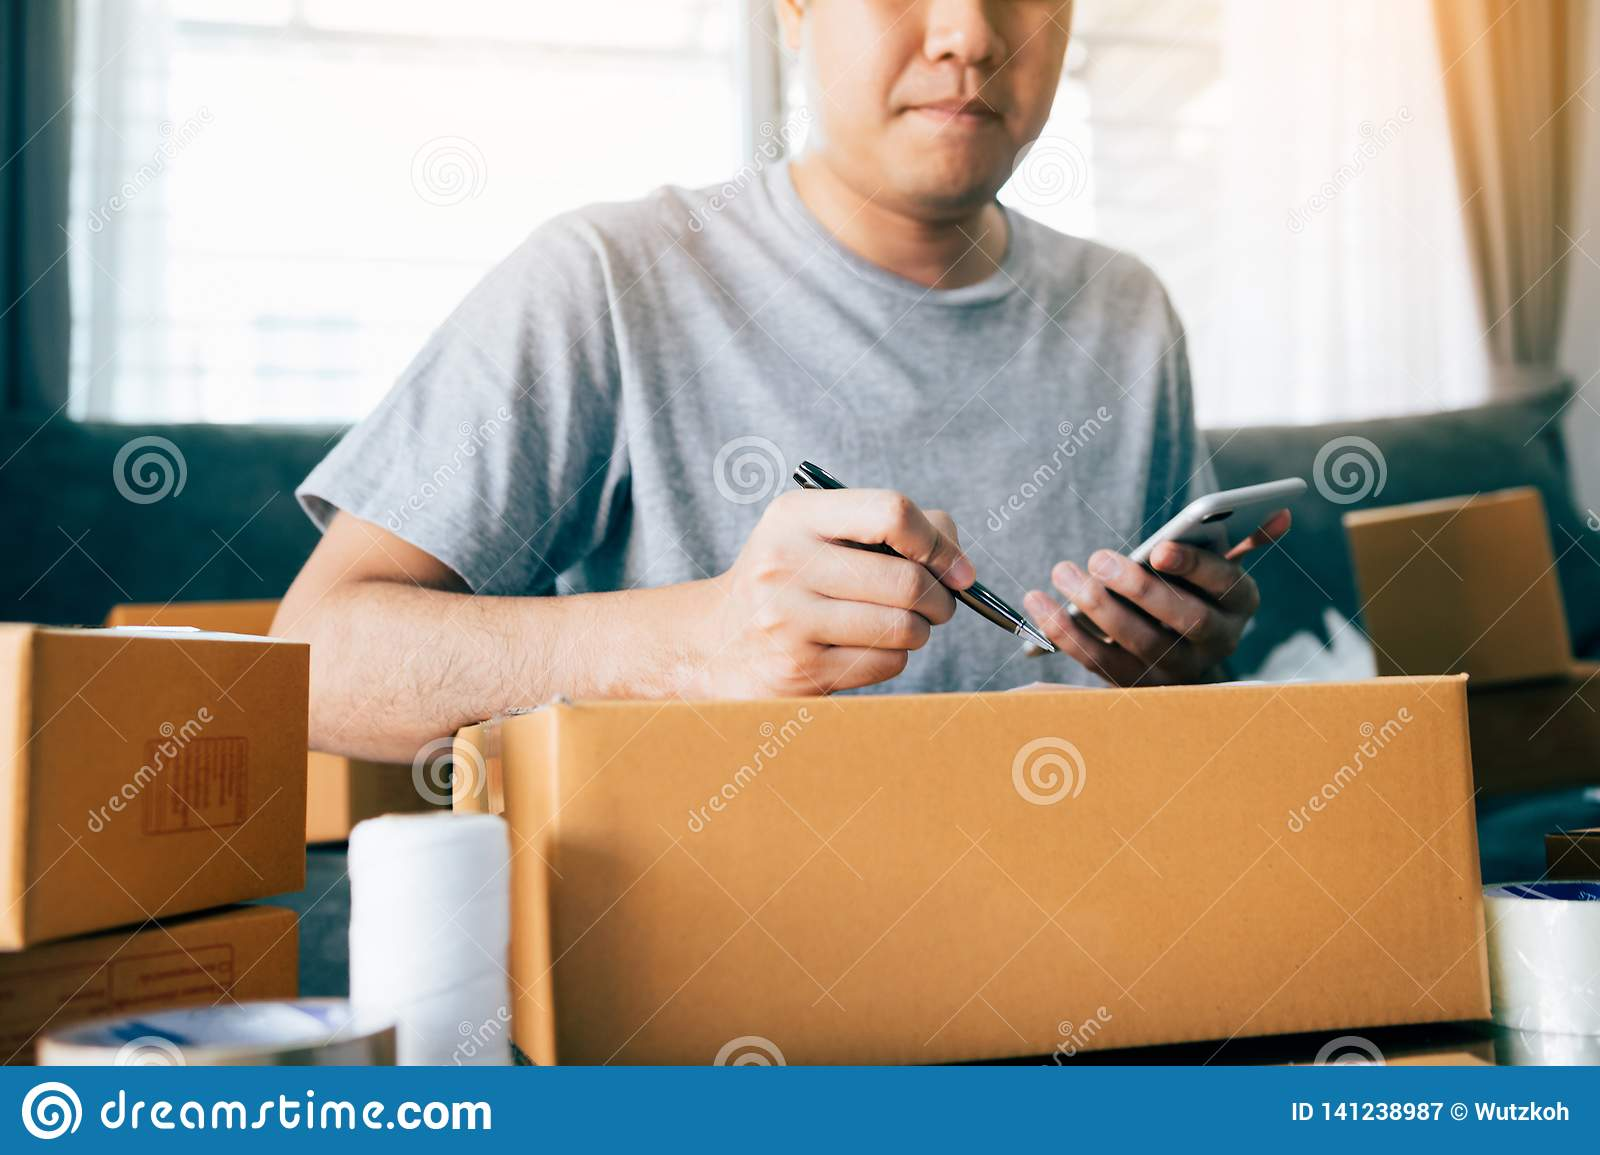 Young asian man business owner hands writing address on cardboard box at workplace or home office